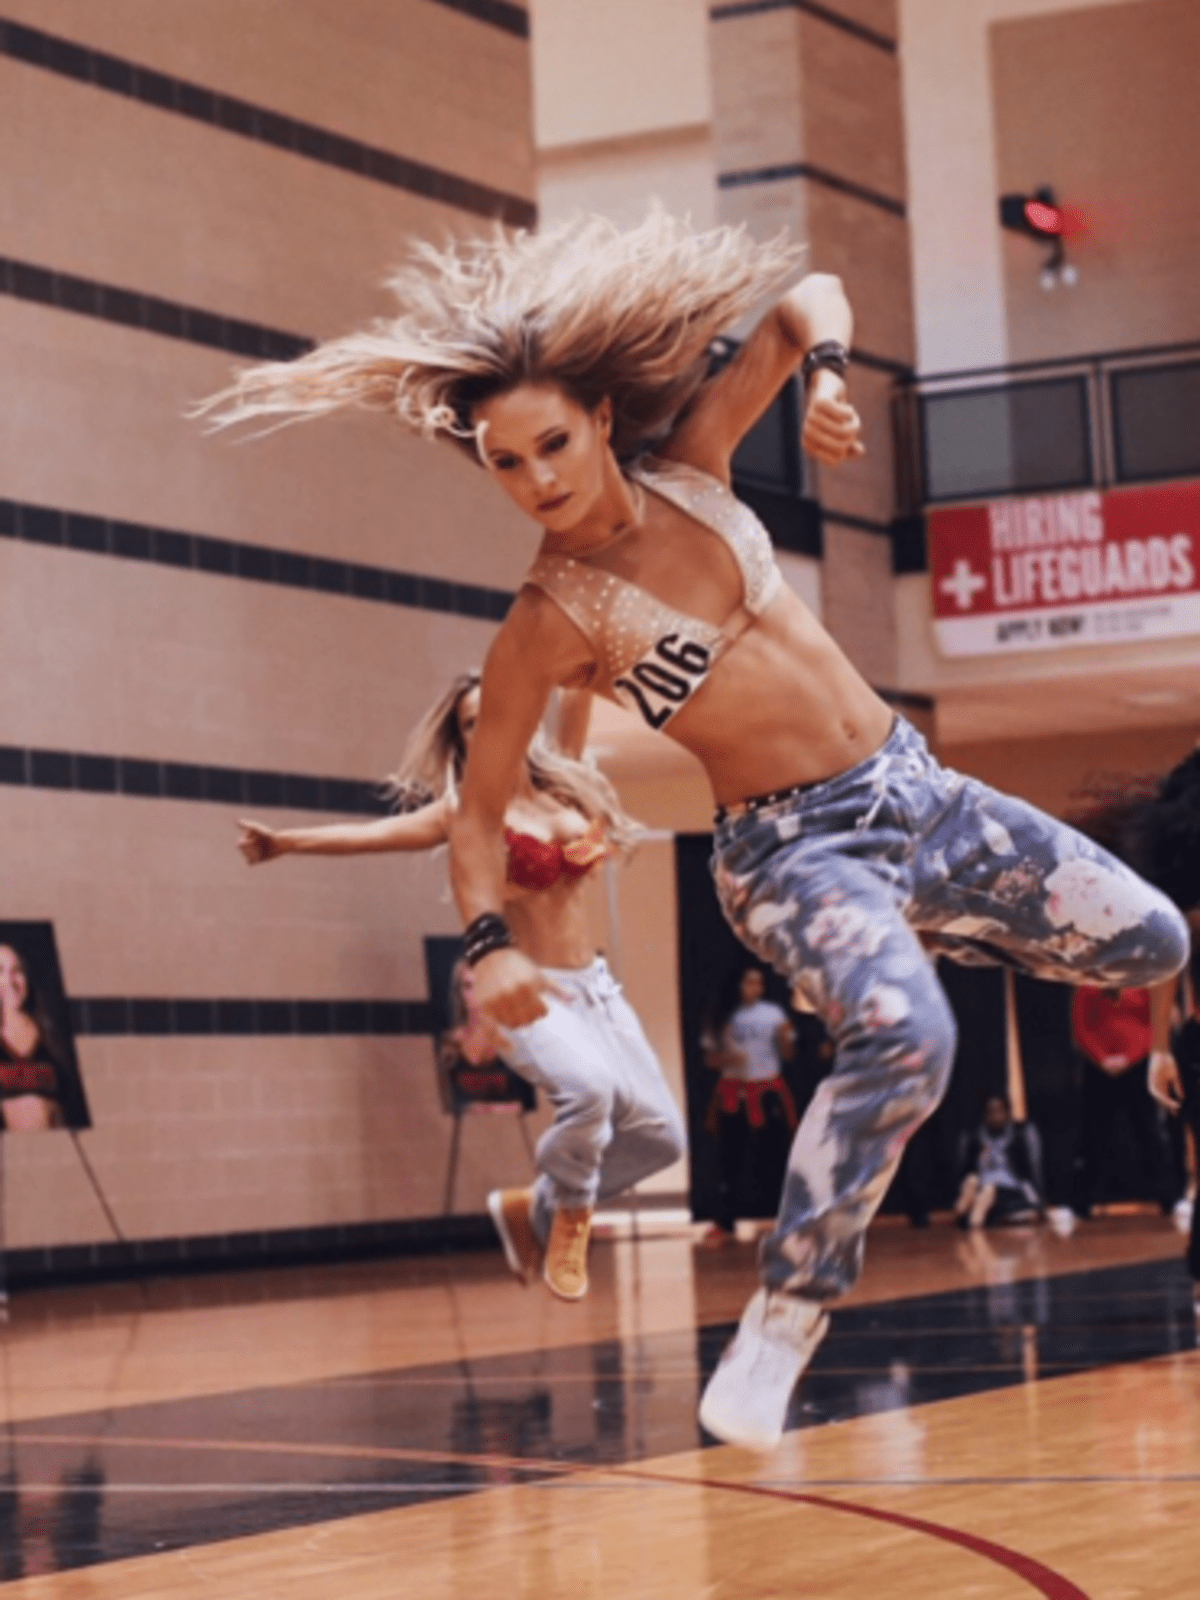 Houston Rockets Power Dancers competition